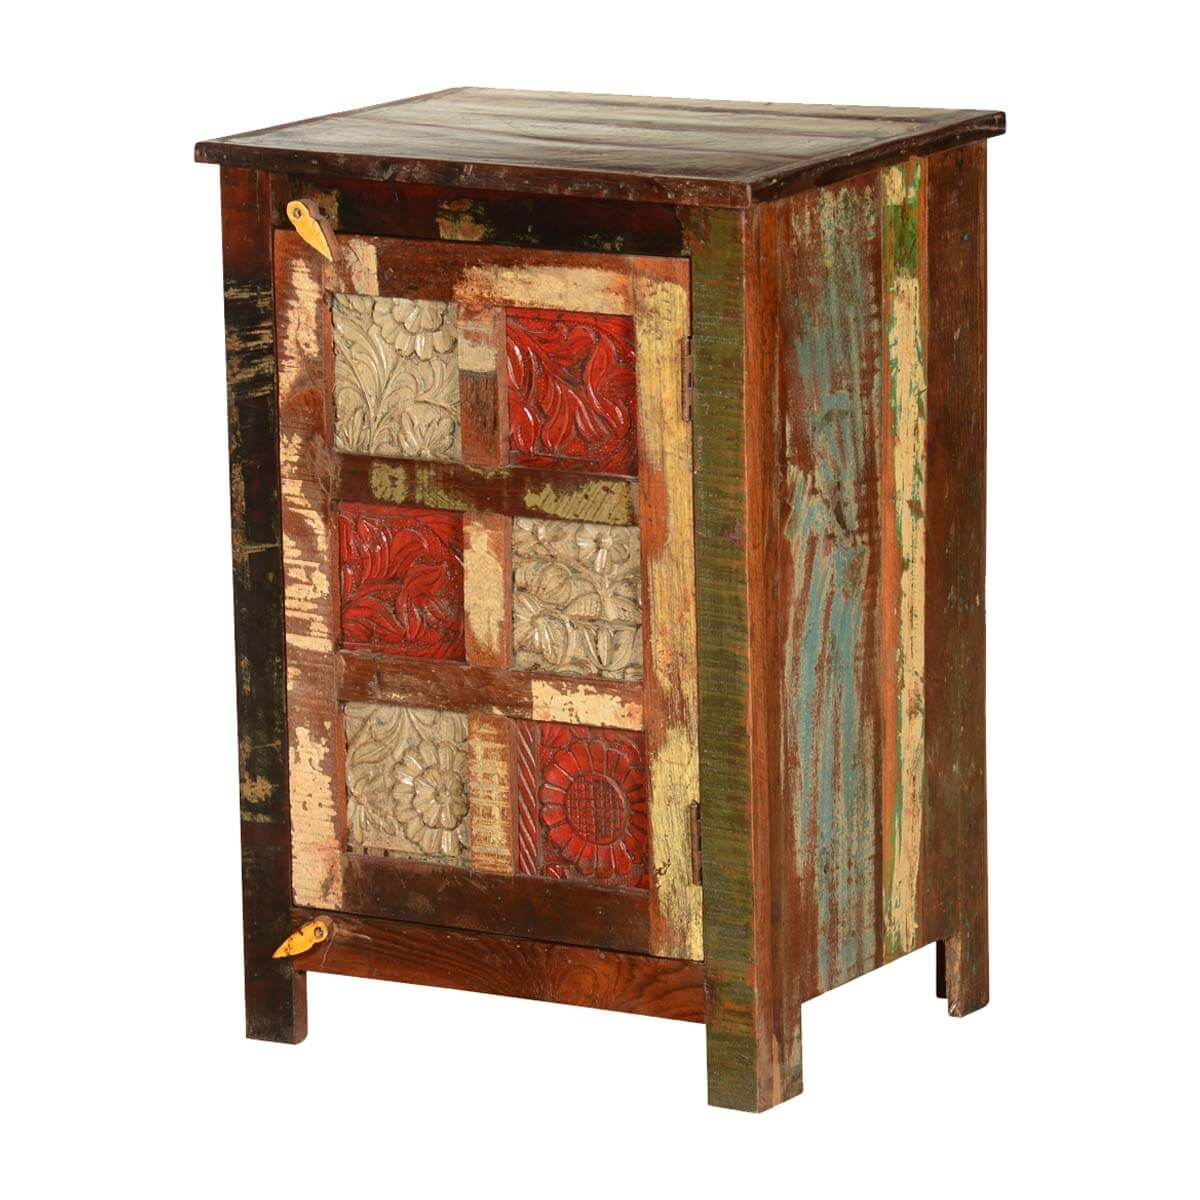 Rustic Floral Tiles Reclaimed Wood Nightstand End Table Cabinet